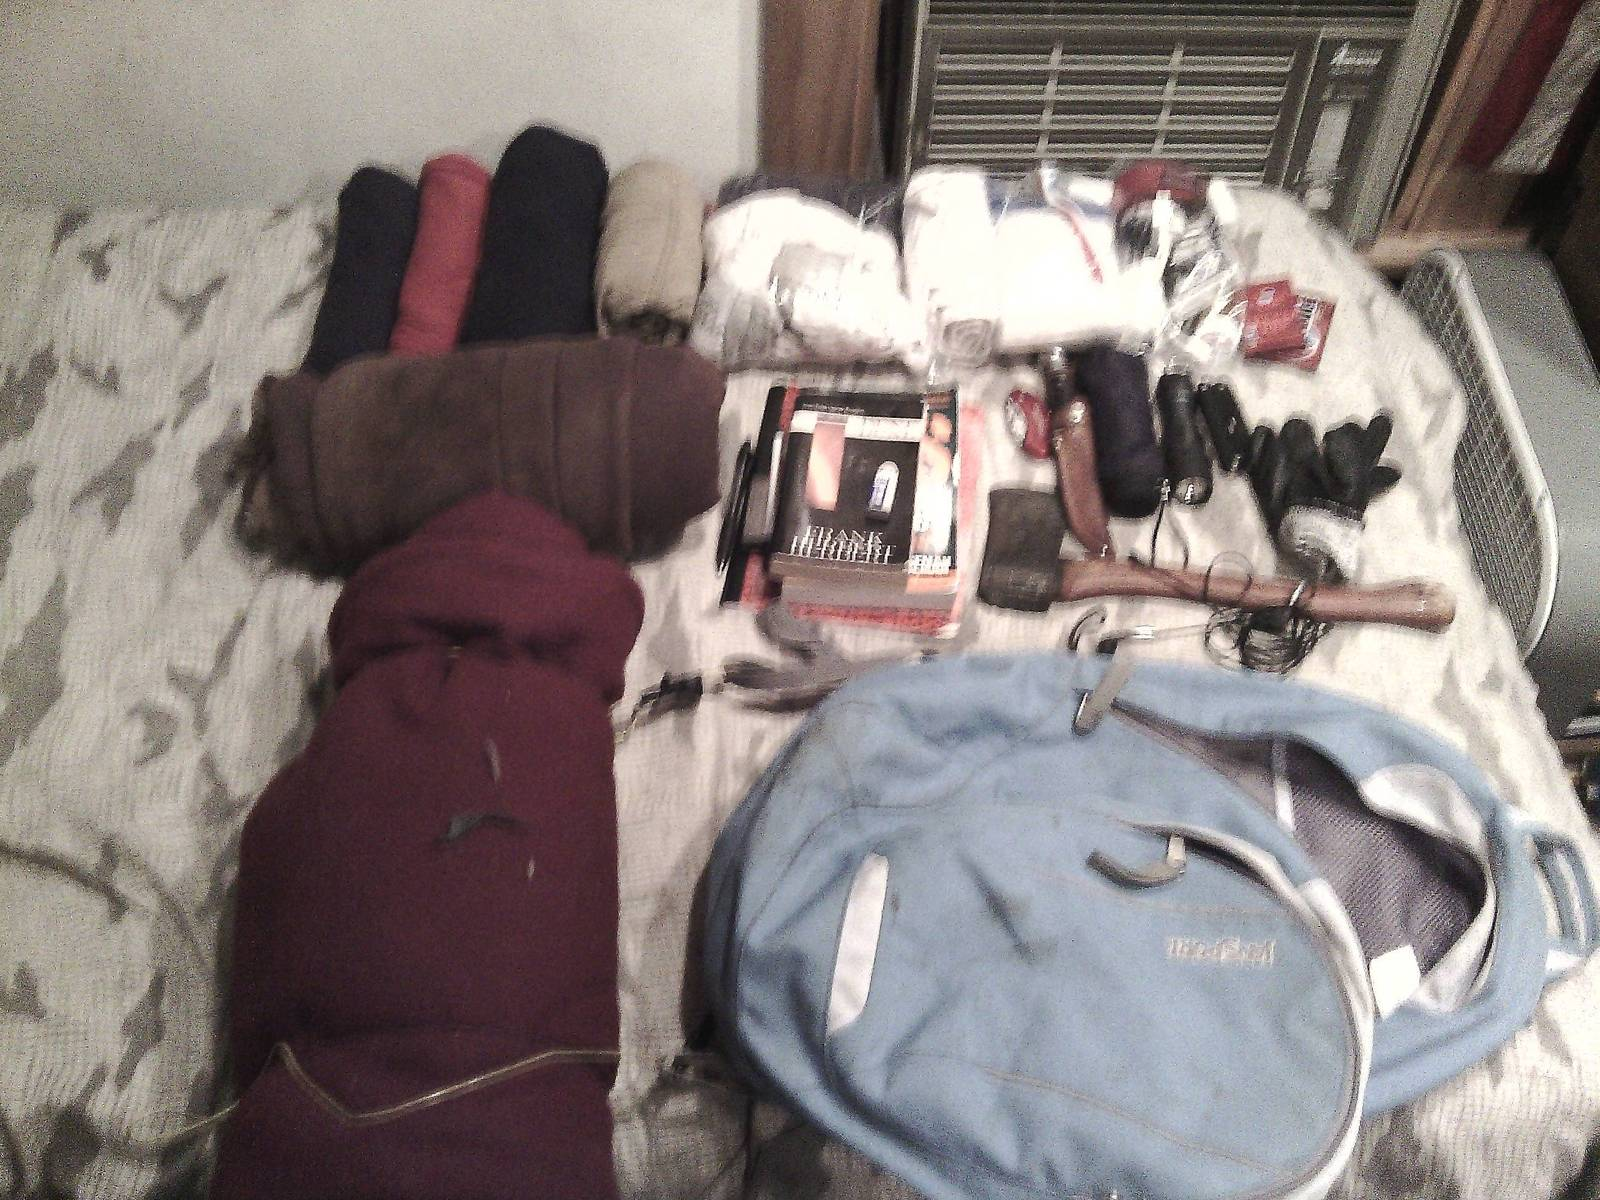 6qmfjjd-jpg.22860_Early packing phase list - What to add, what to take away?_General Gear Discussion_Squat the Planet_8:37 PM